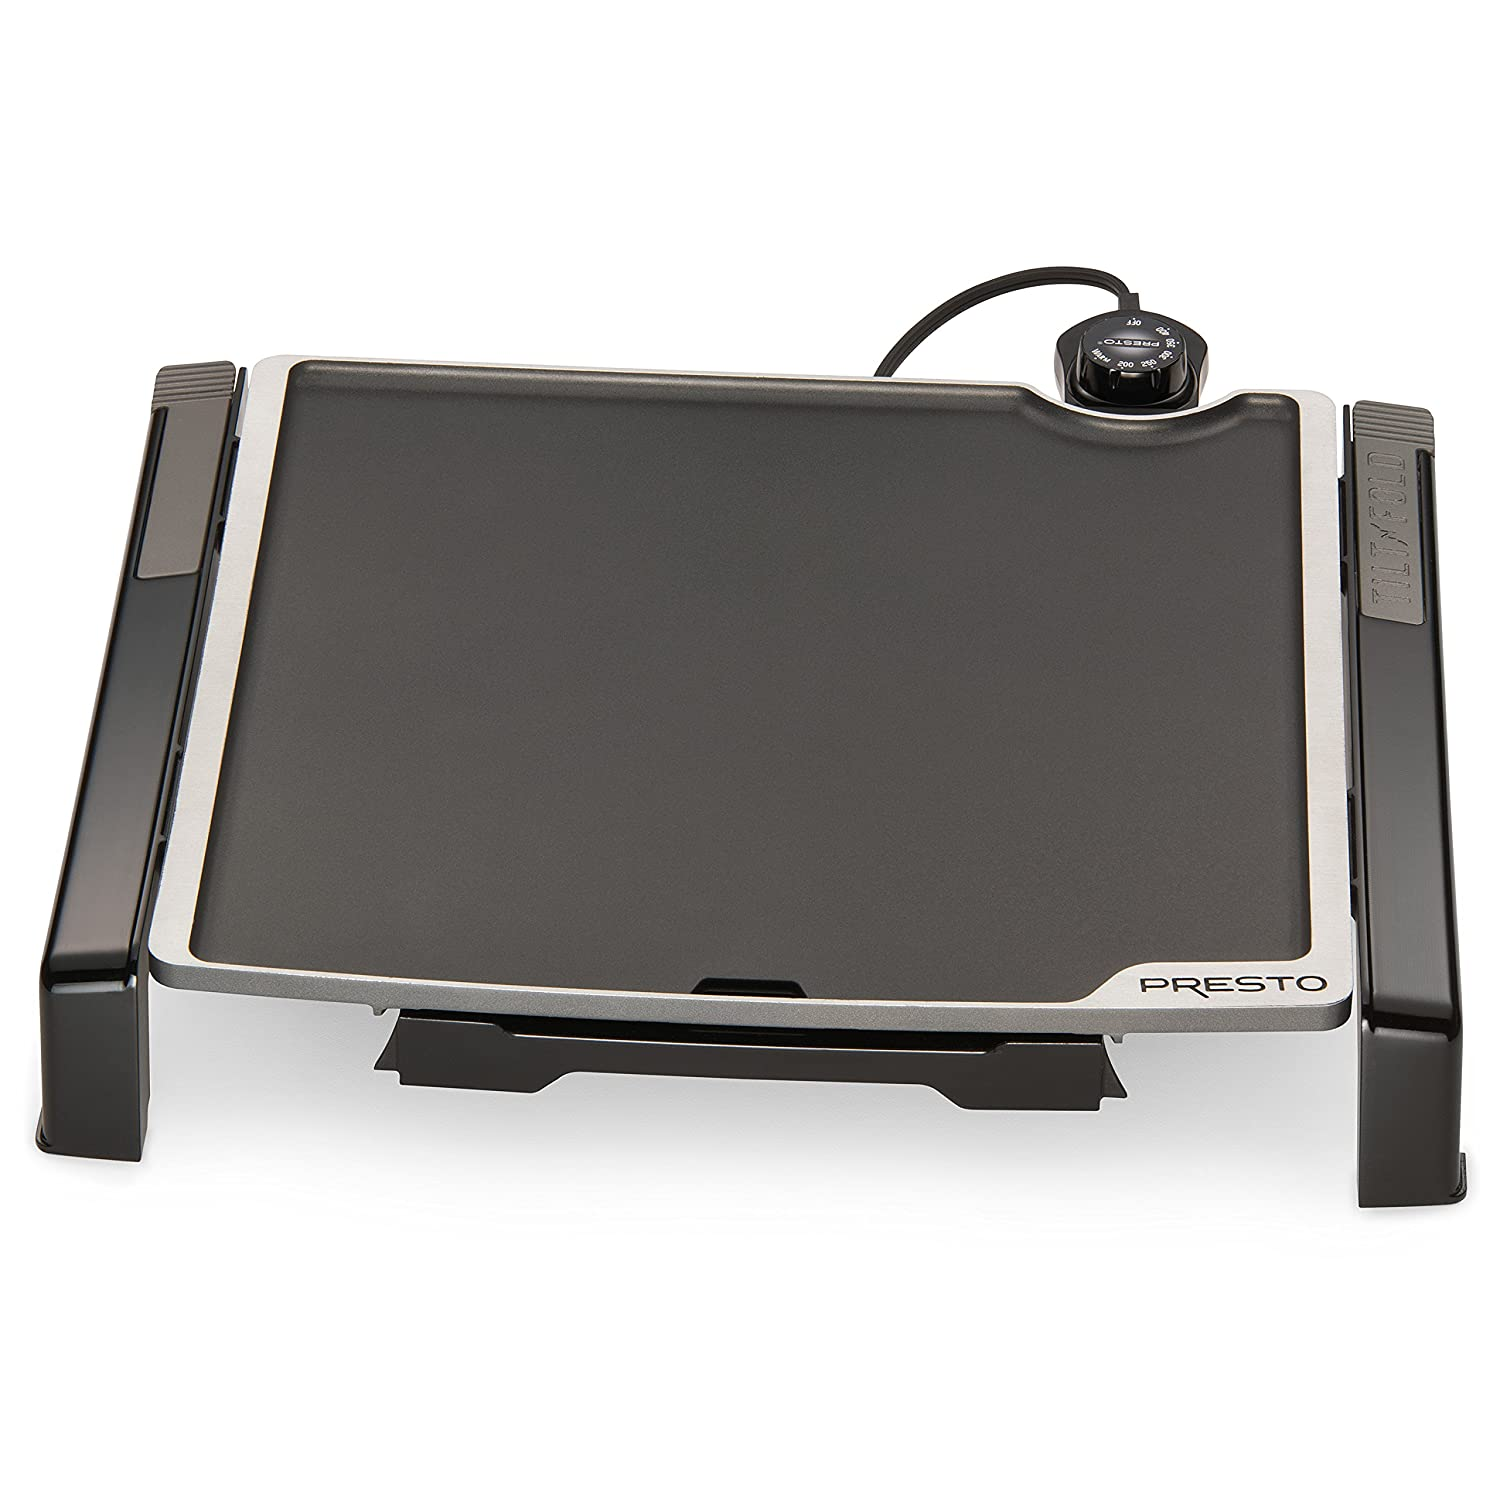 "Presto 07071 Electric Tilt-N-fold Griddle, 15"", Black"